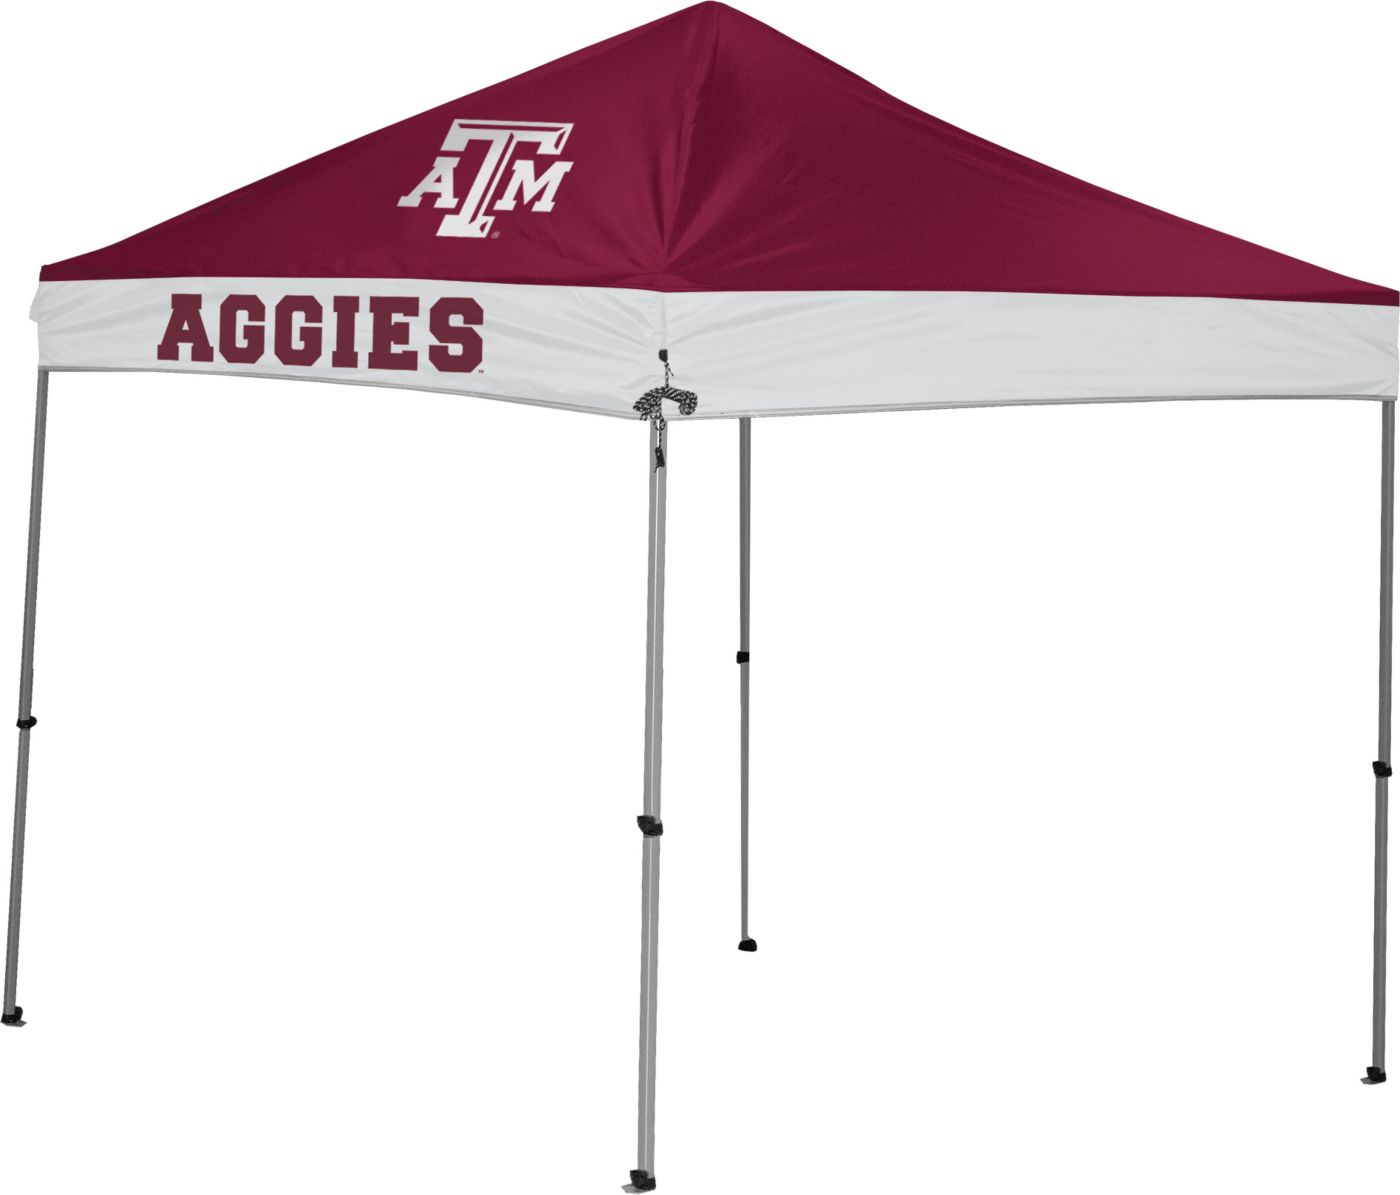 Rawlings Texas A&M Aggies 9' x 9' Sideline Canopy Tent